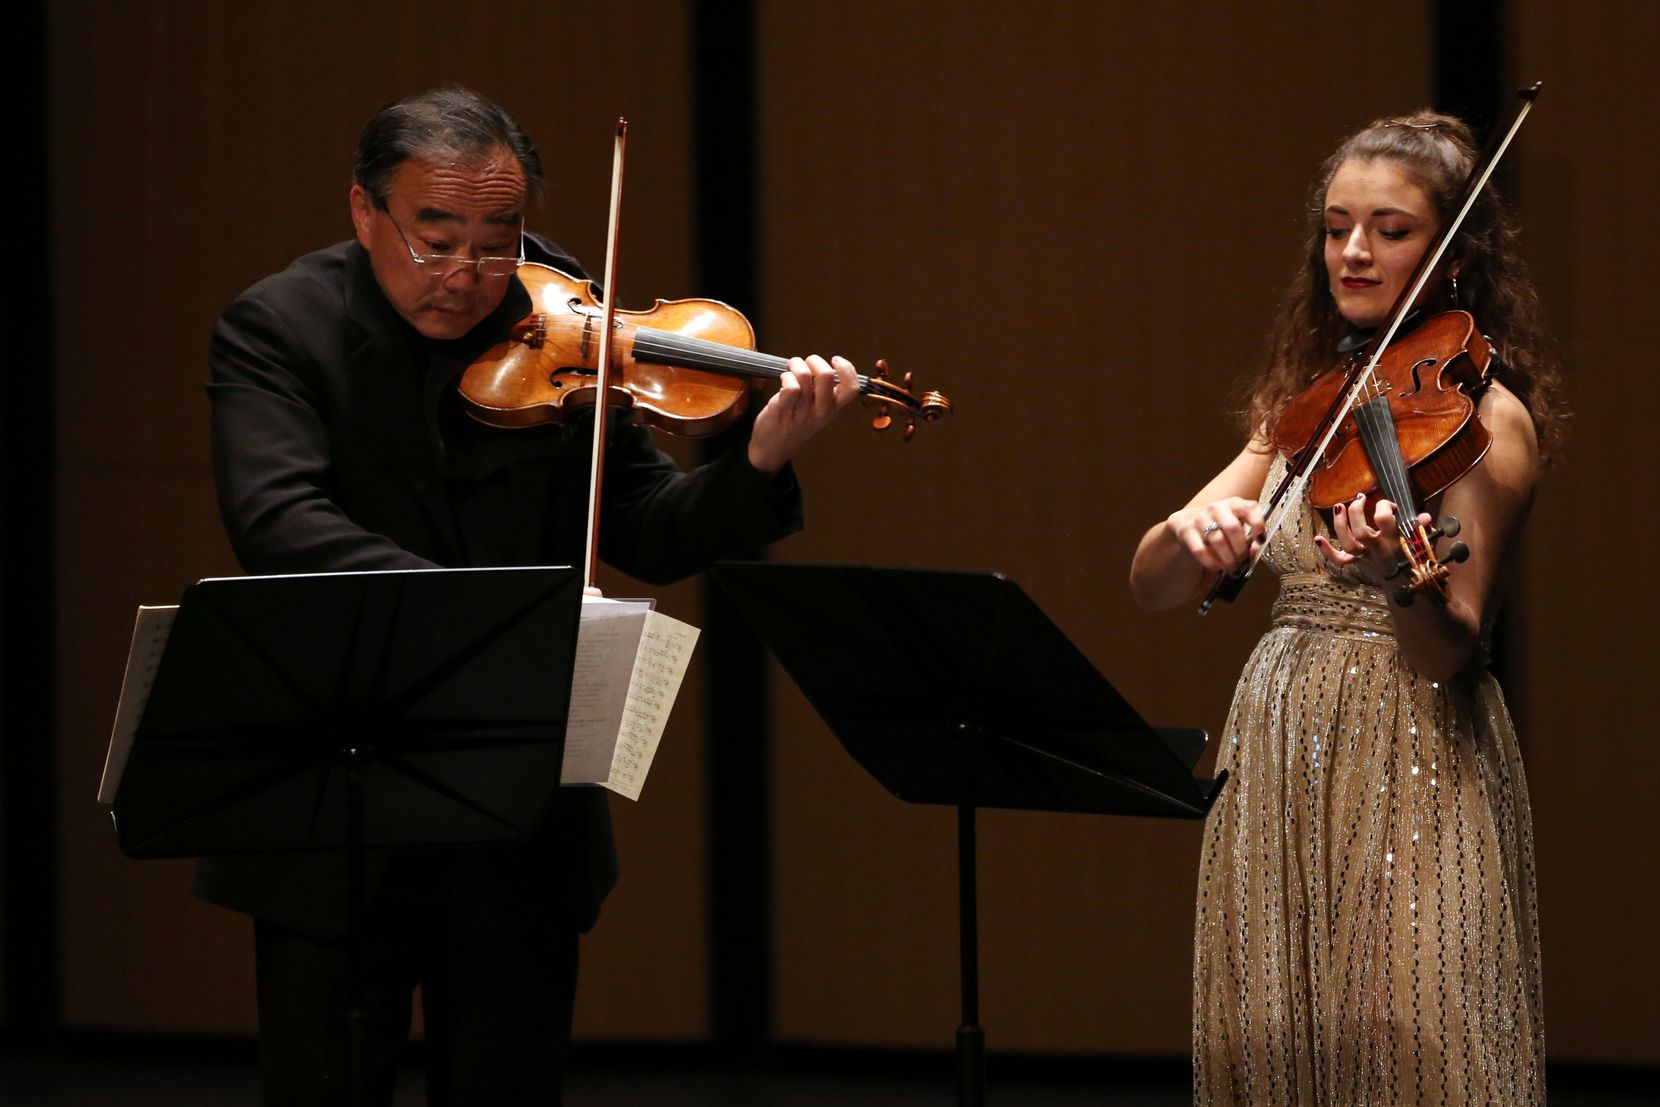 Violinist Cho-Liang Lin (left) and violist Milena Pajaro-van de Stadt perform in a Chamber Music International concert at Moody Performance Hall in Dallas on Friday, Dec. 6, 2019.